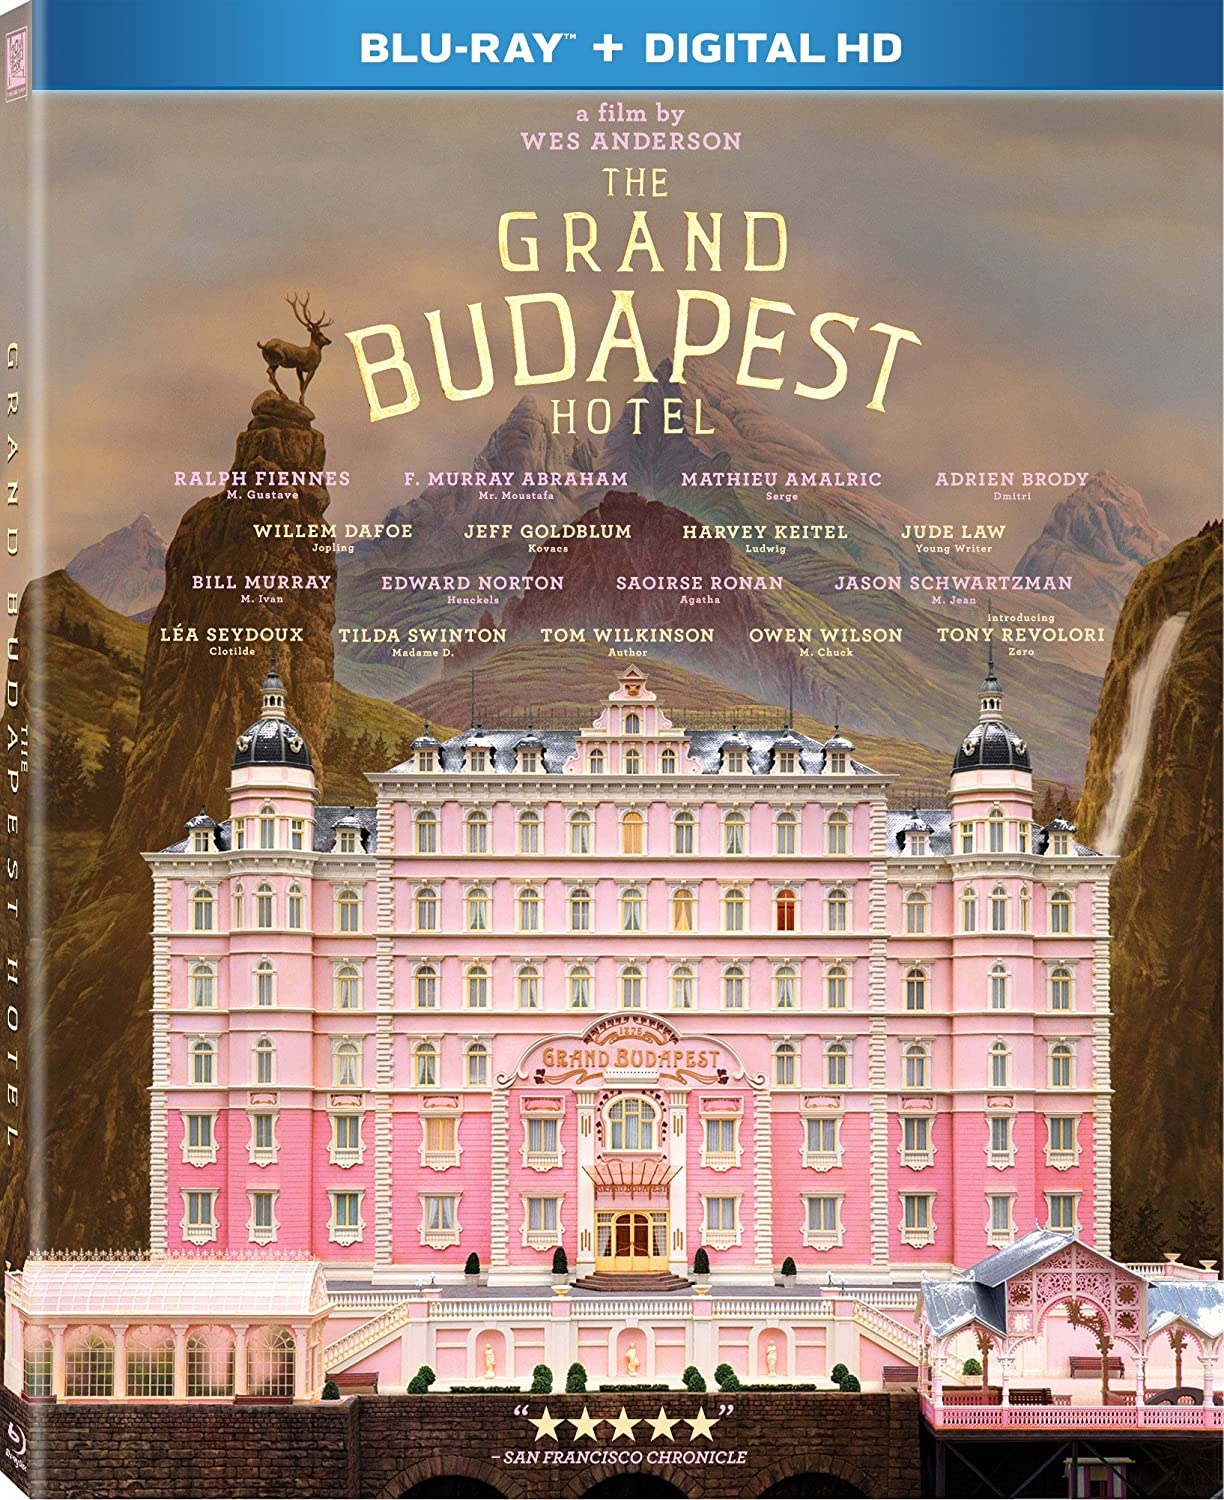 com the grand budapest hotel blu ray ralph fiennes f  com the grand budapest hotel blu ray ralph fiennes f murray abraham mathieu amalric adrien brody willem dafoe jeff goldblum harvey keitel